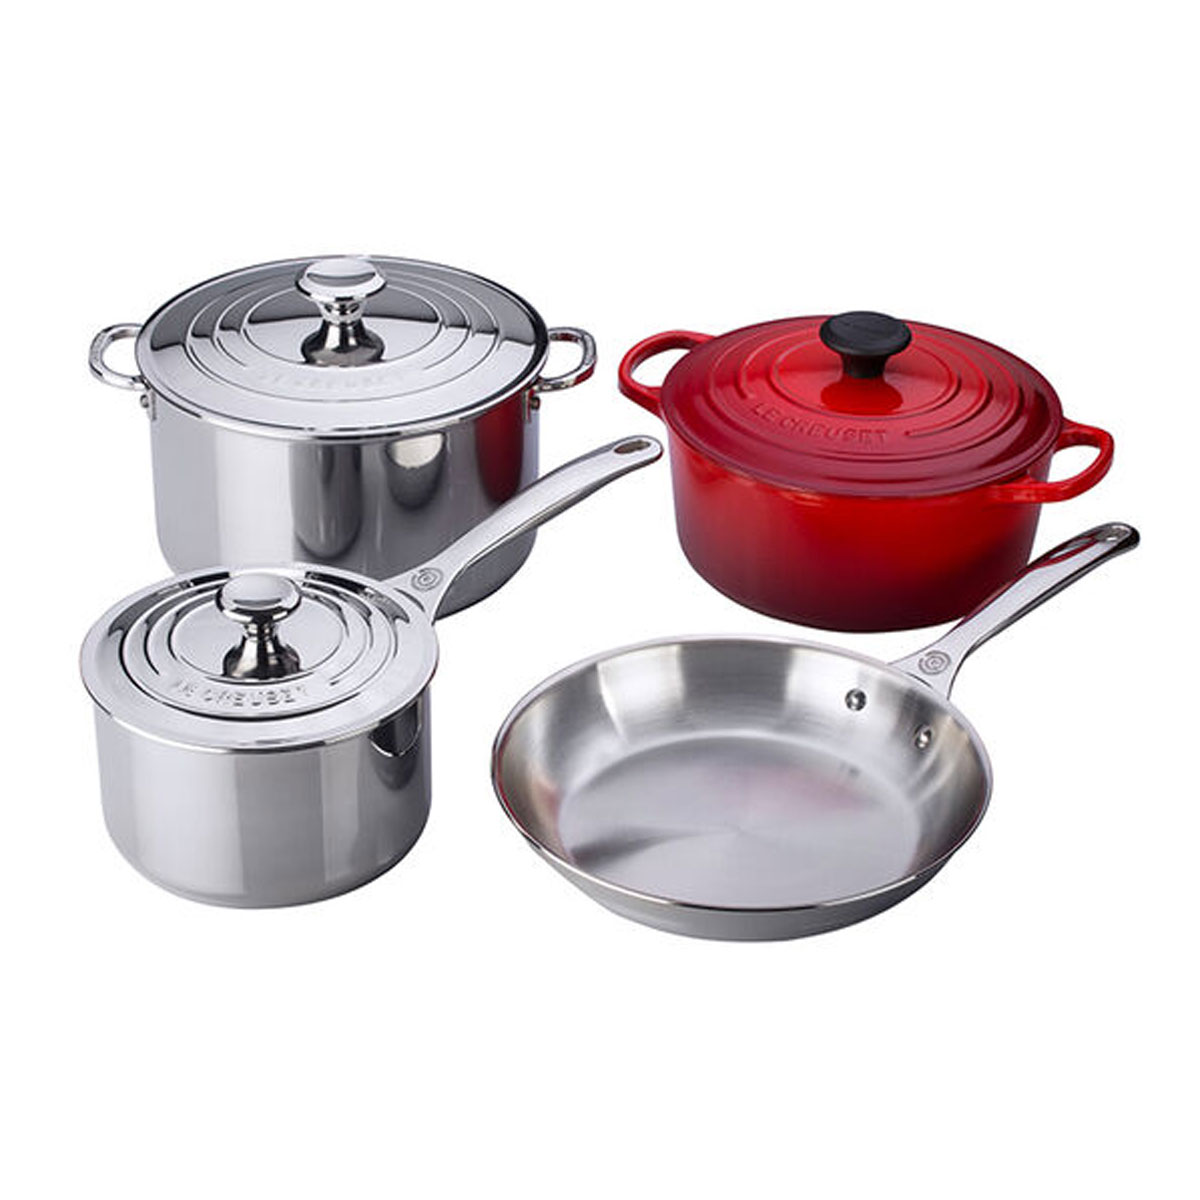 Le Creuset stainless steel set